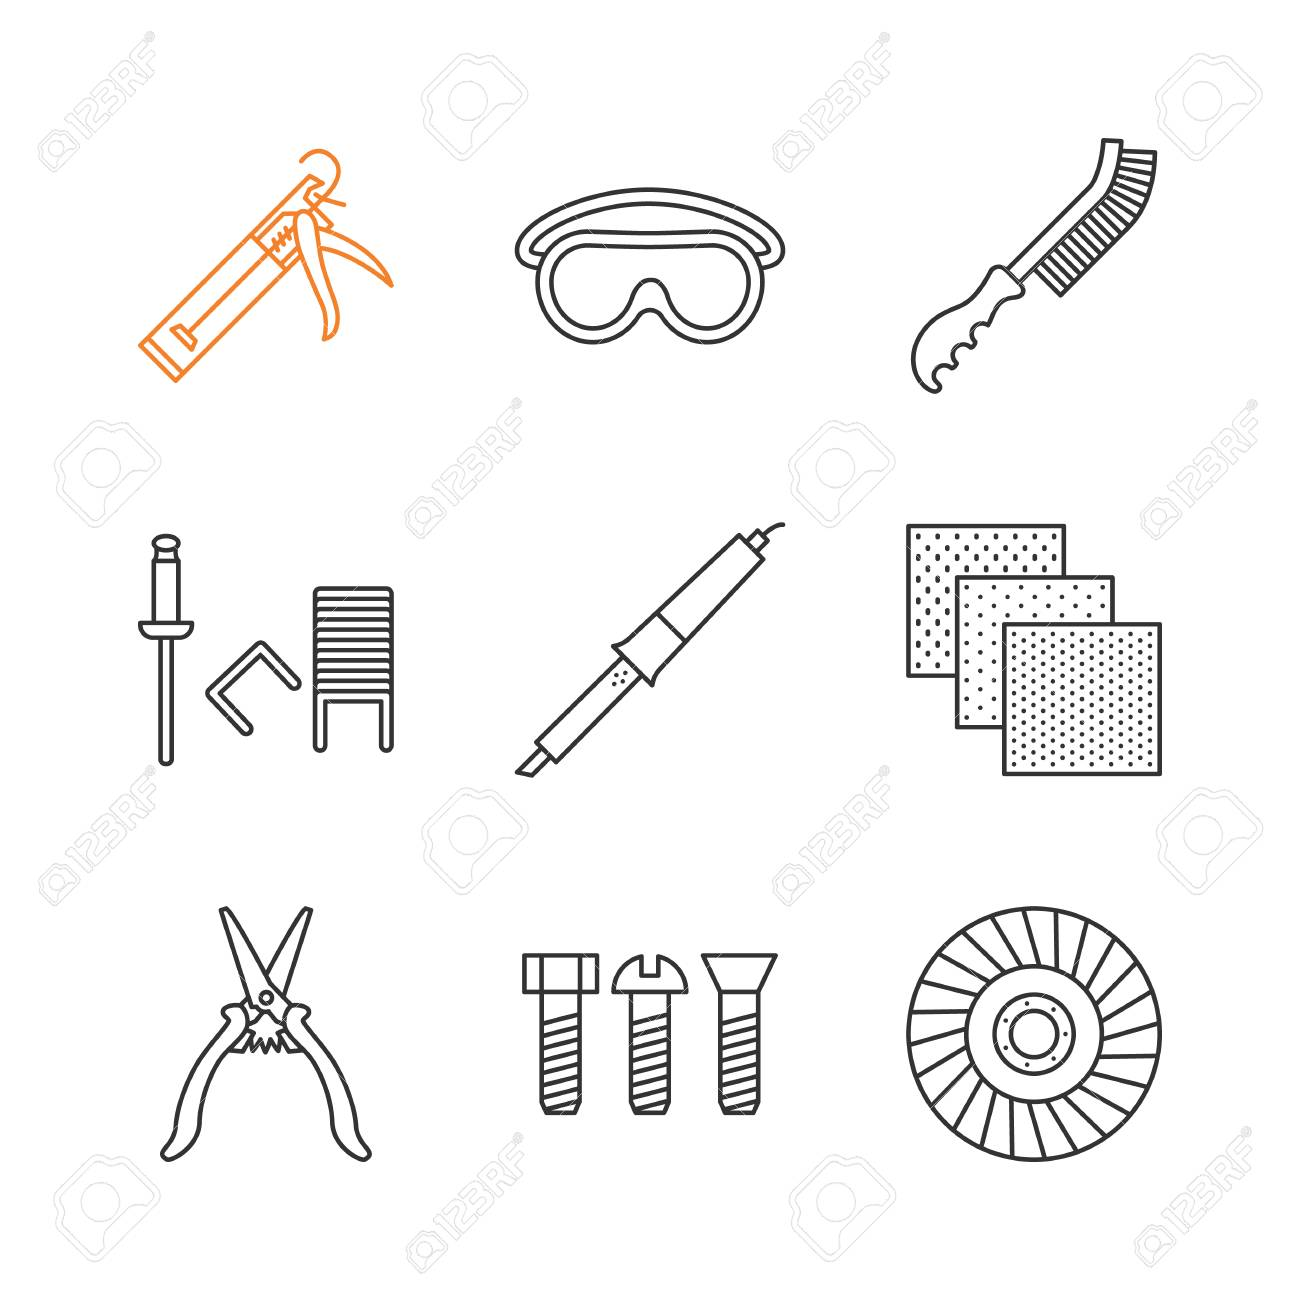 construction tools linear icons set caulking gun goggles wire rh 123rf com Wire Diagram Template Wire Diagram Template